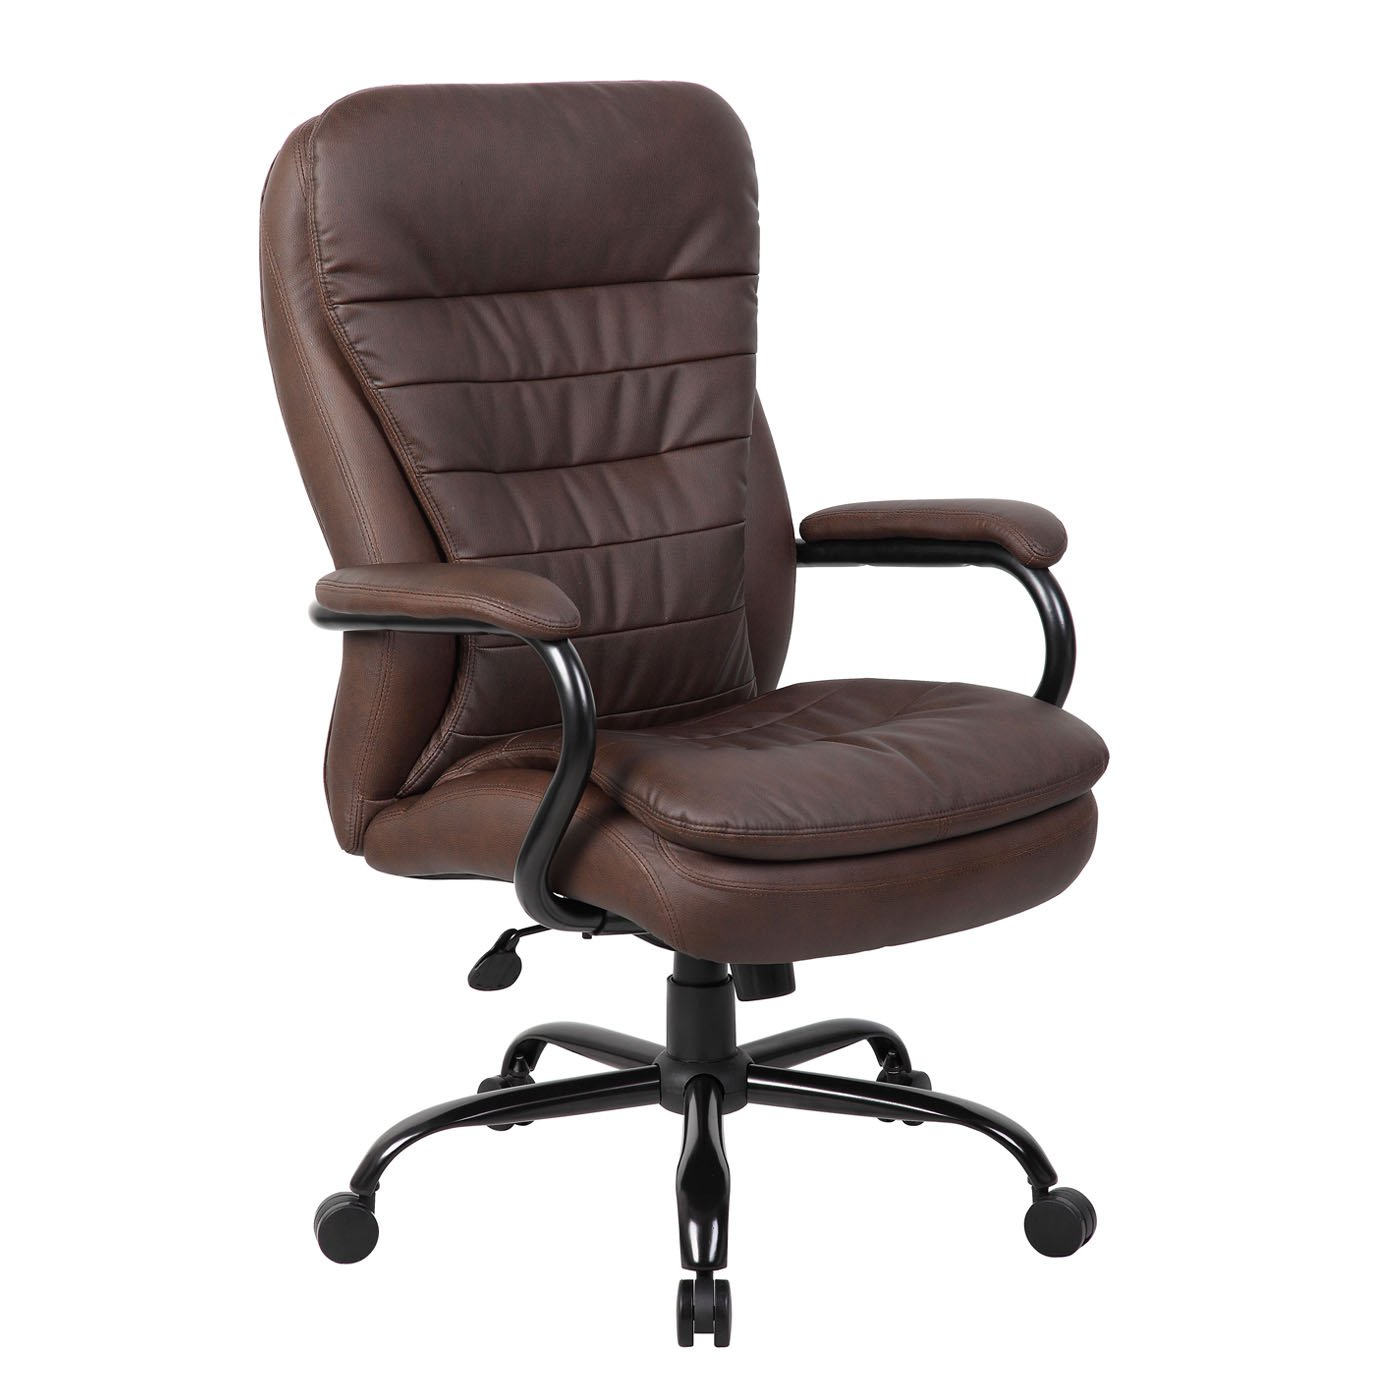 plush office chair